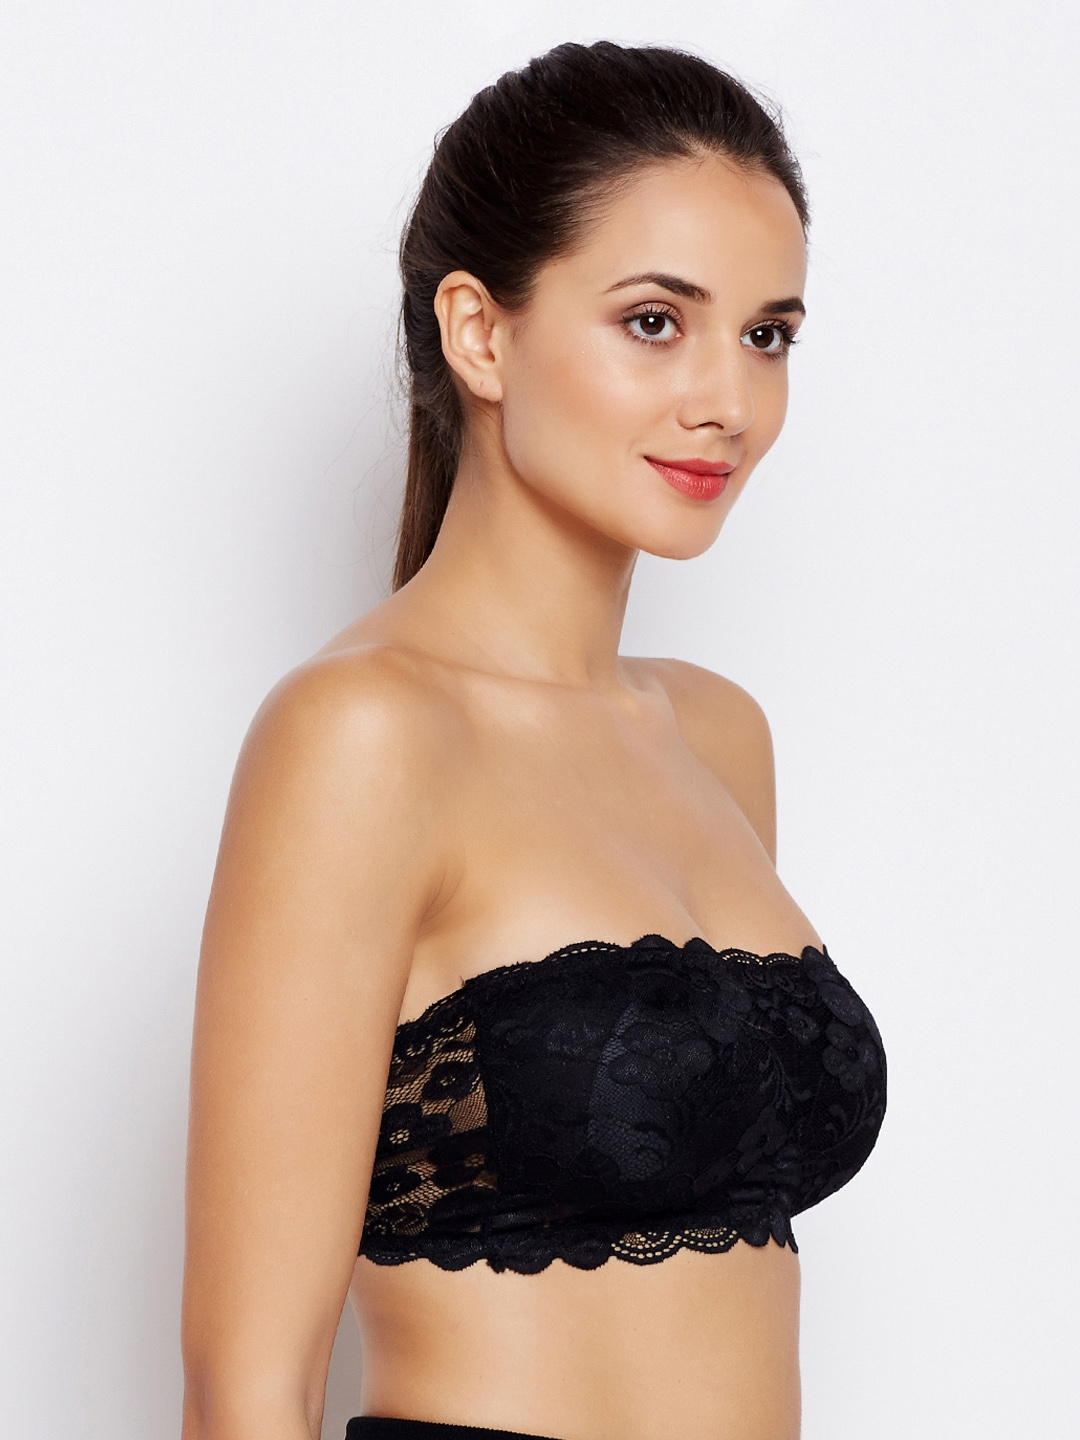 e4659ba763246 Golden Girl Black Lace Non-Wired Lightly Padded Bandeau Bra 1209201878